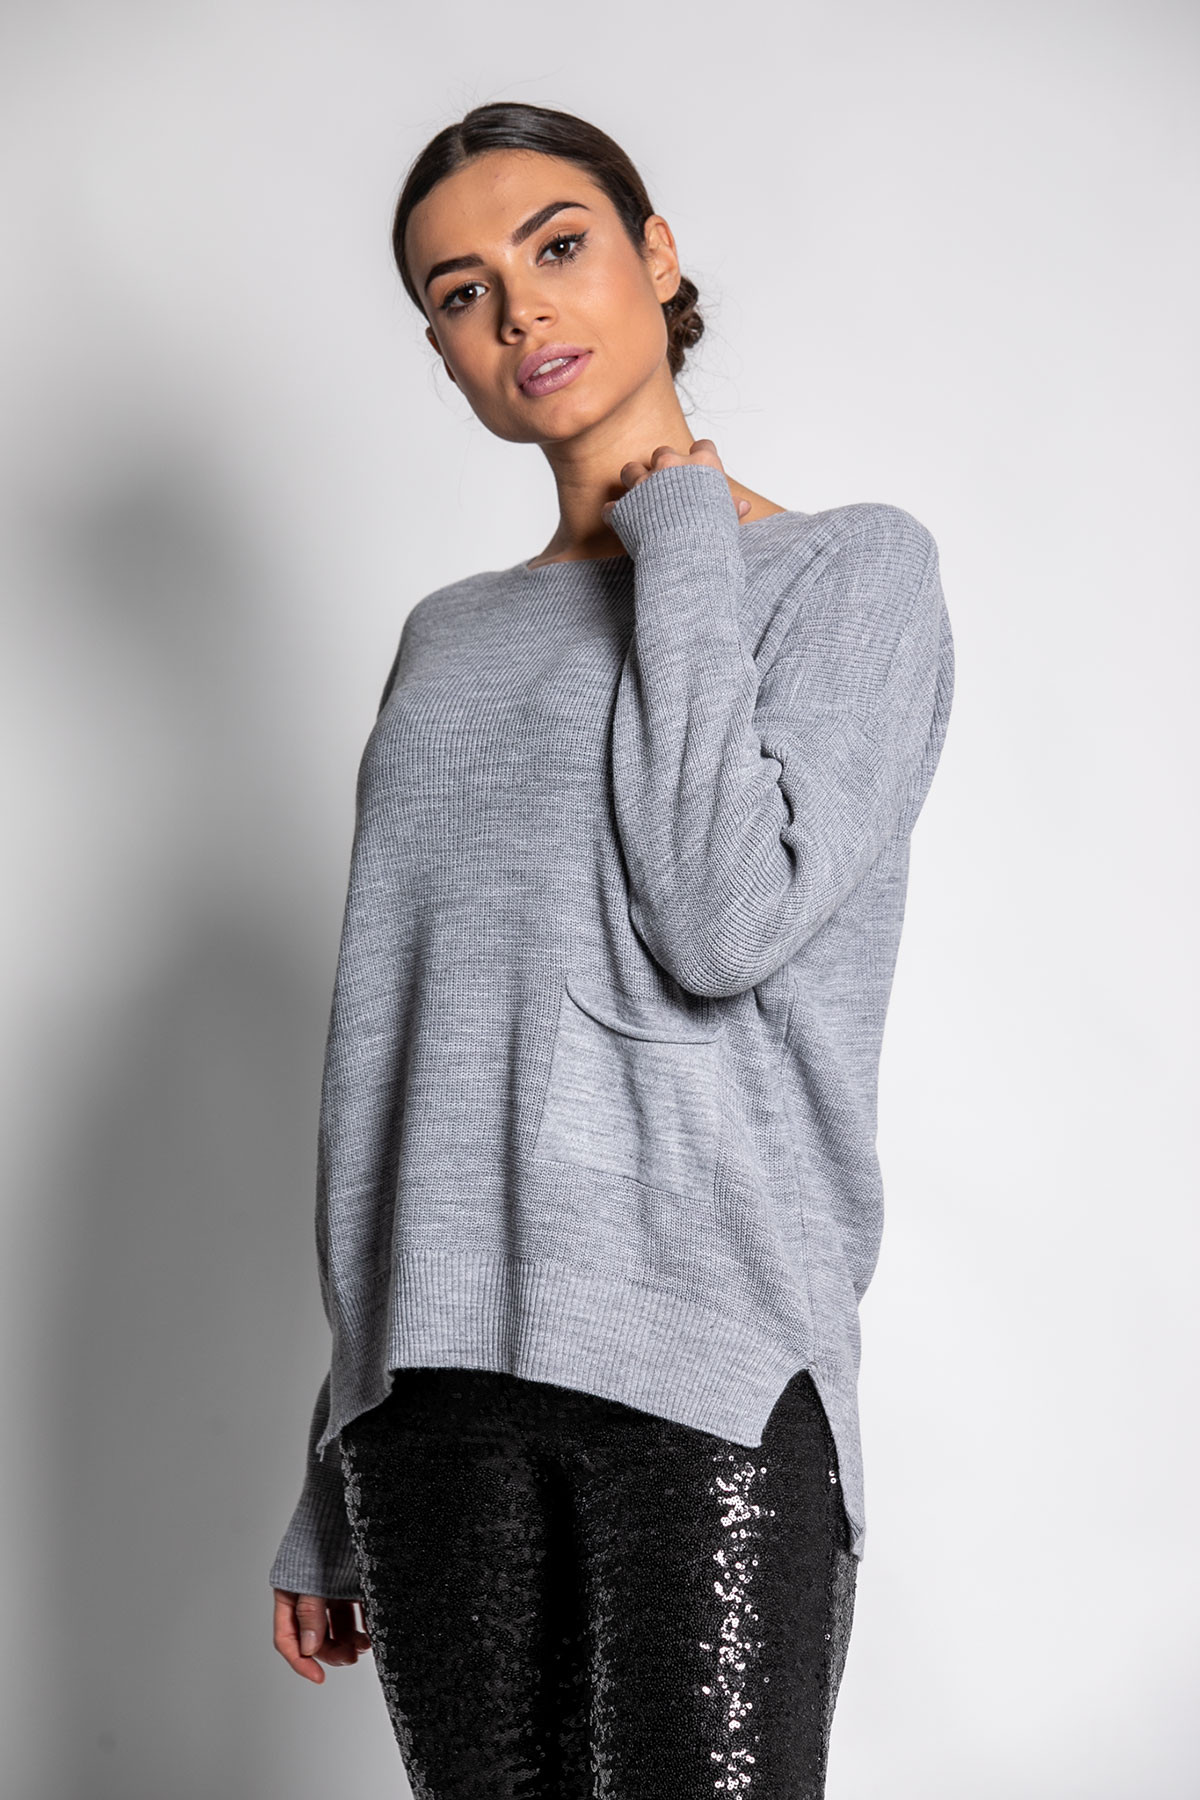 GRAY BASIC KNIT TOP WITH POCKET